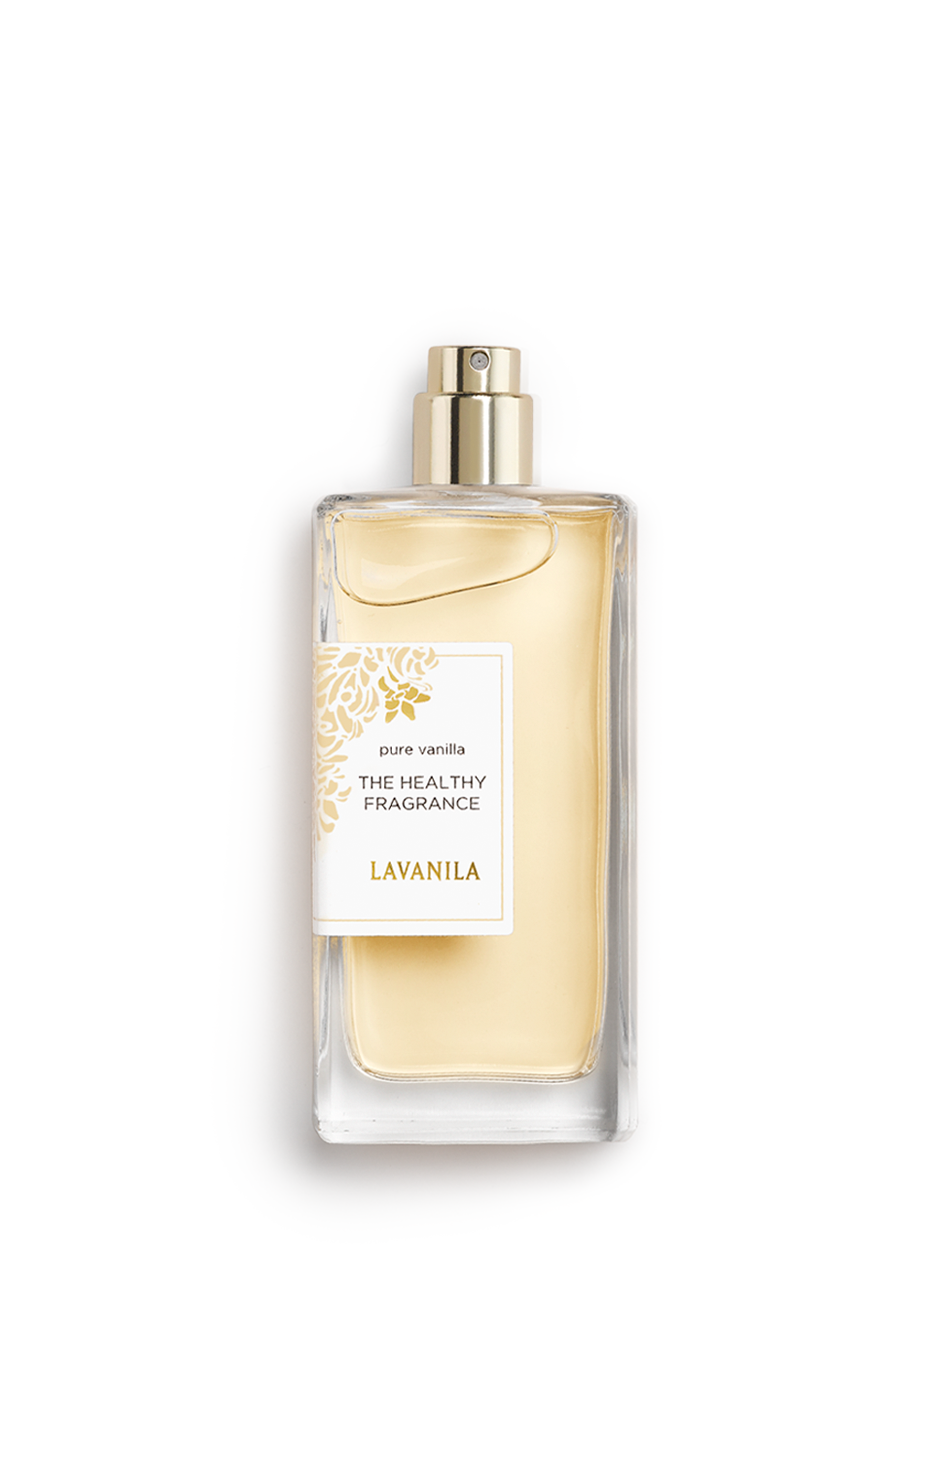 The Healthy Fragrance Pure Vanilla Vanilla Perfume Lavanila